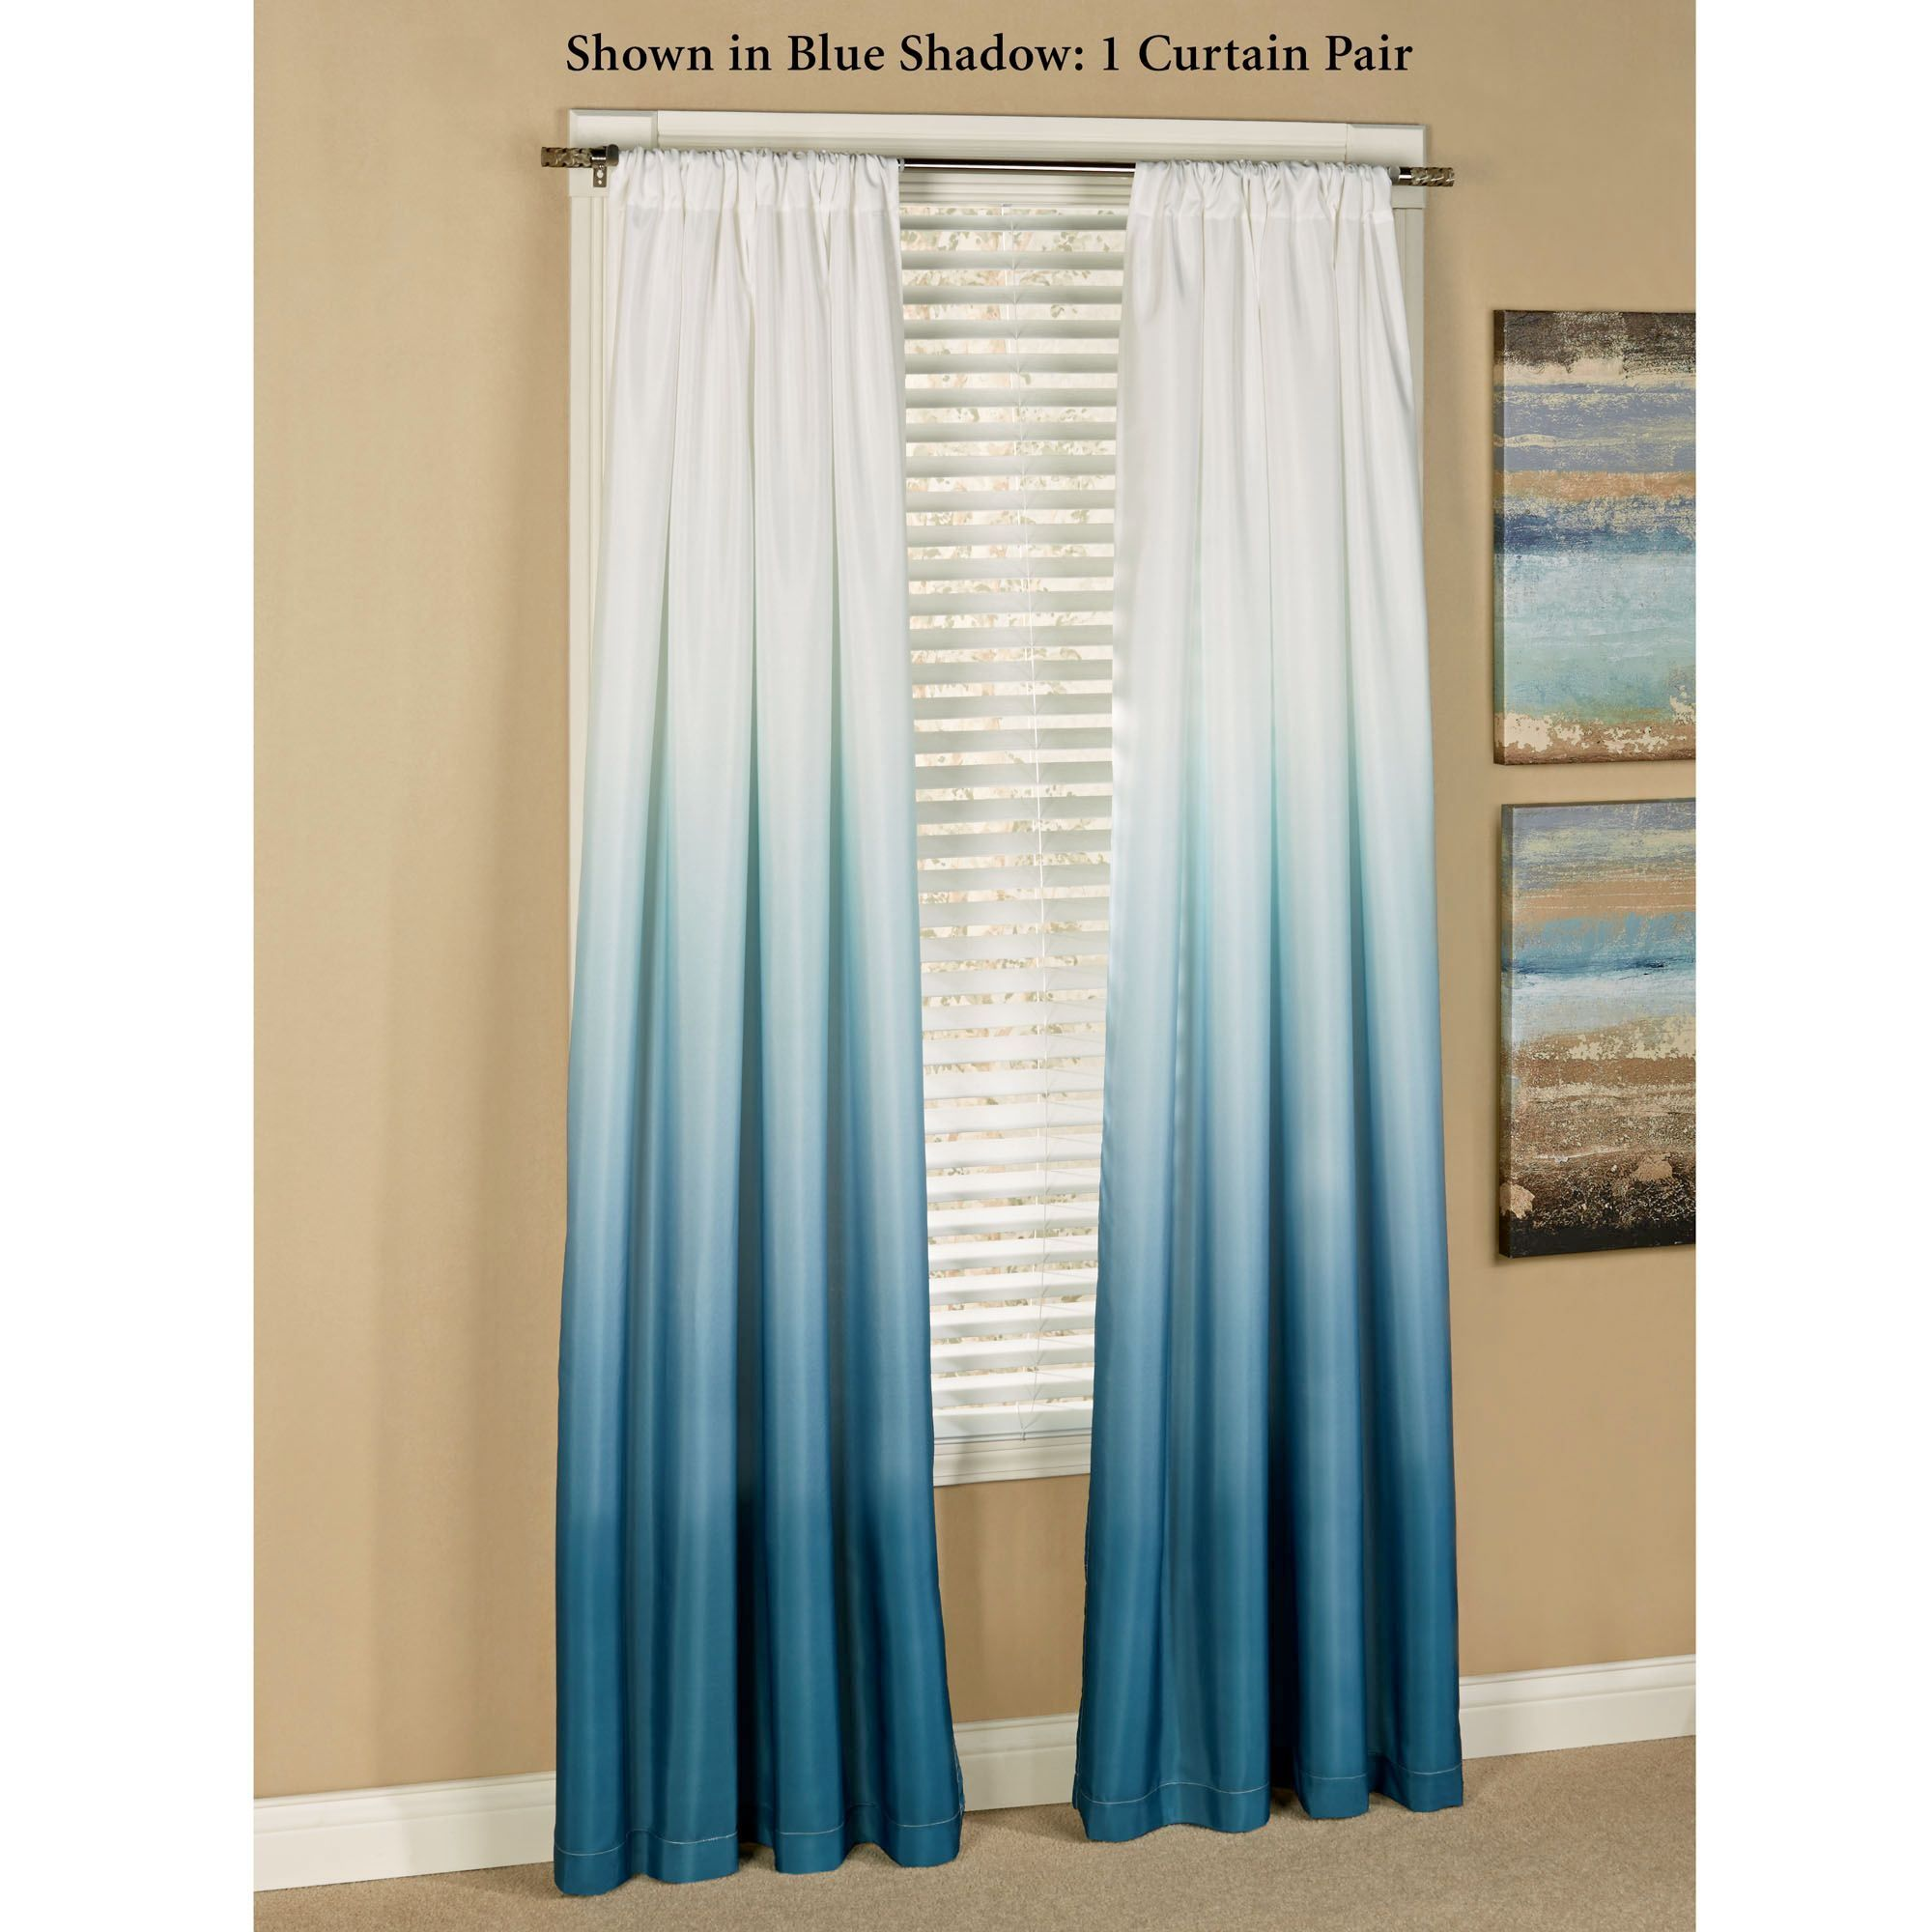 Blue curtain living room - Shades Ombre Curtains